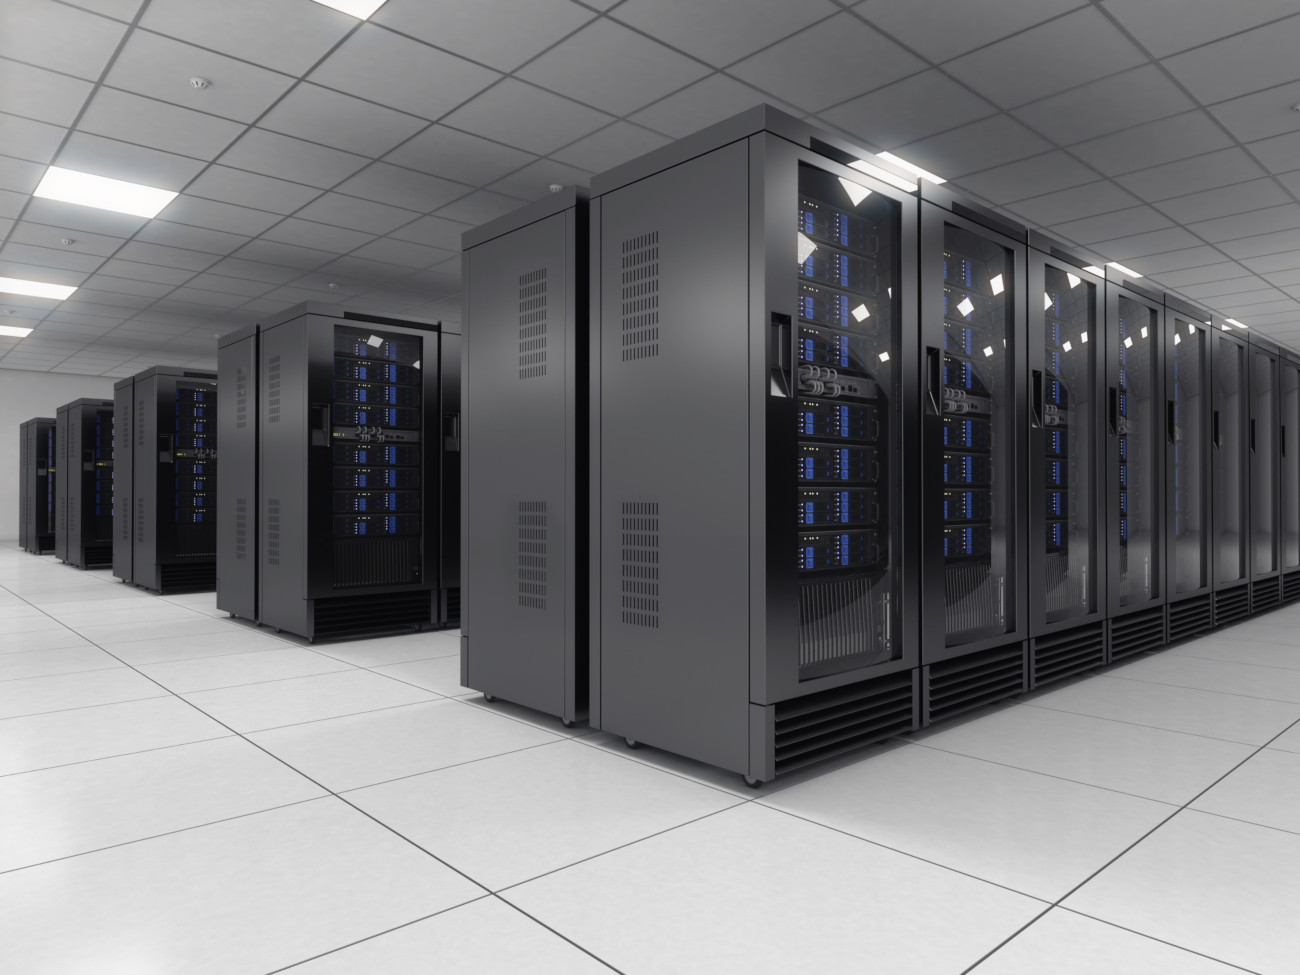 colocation explained globaldots